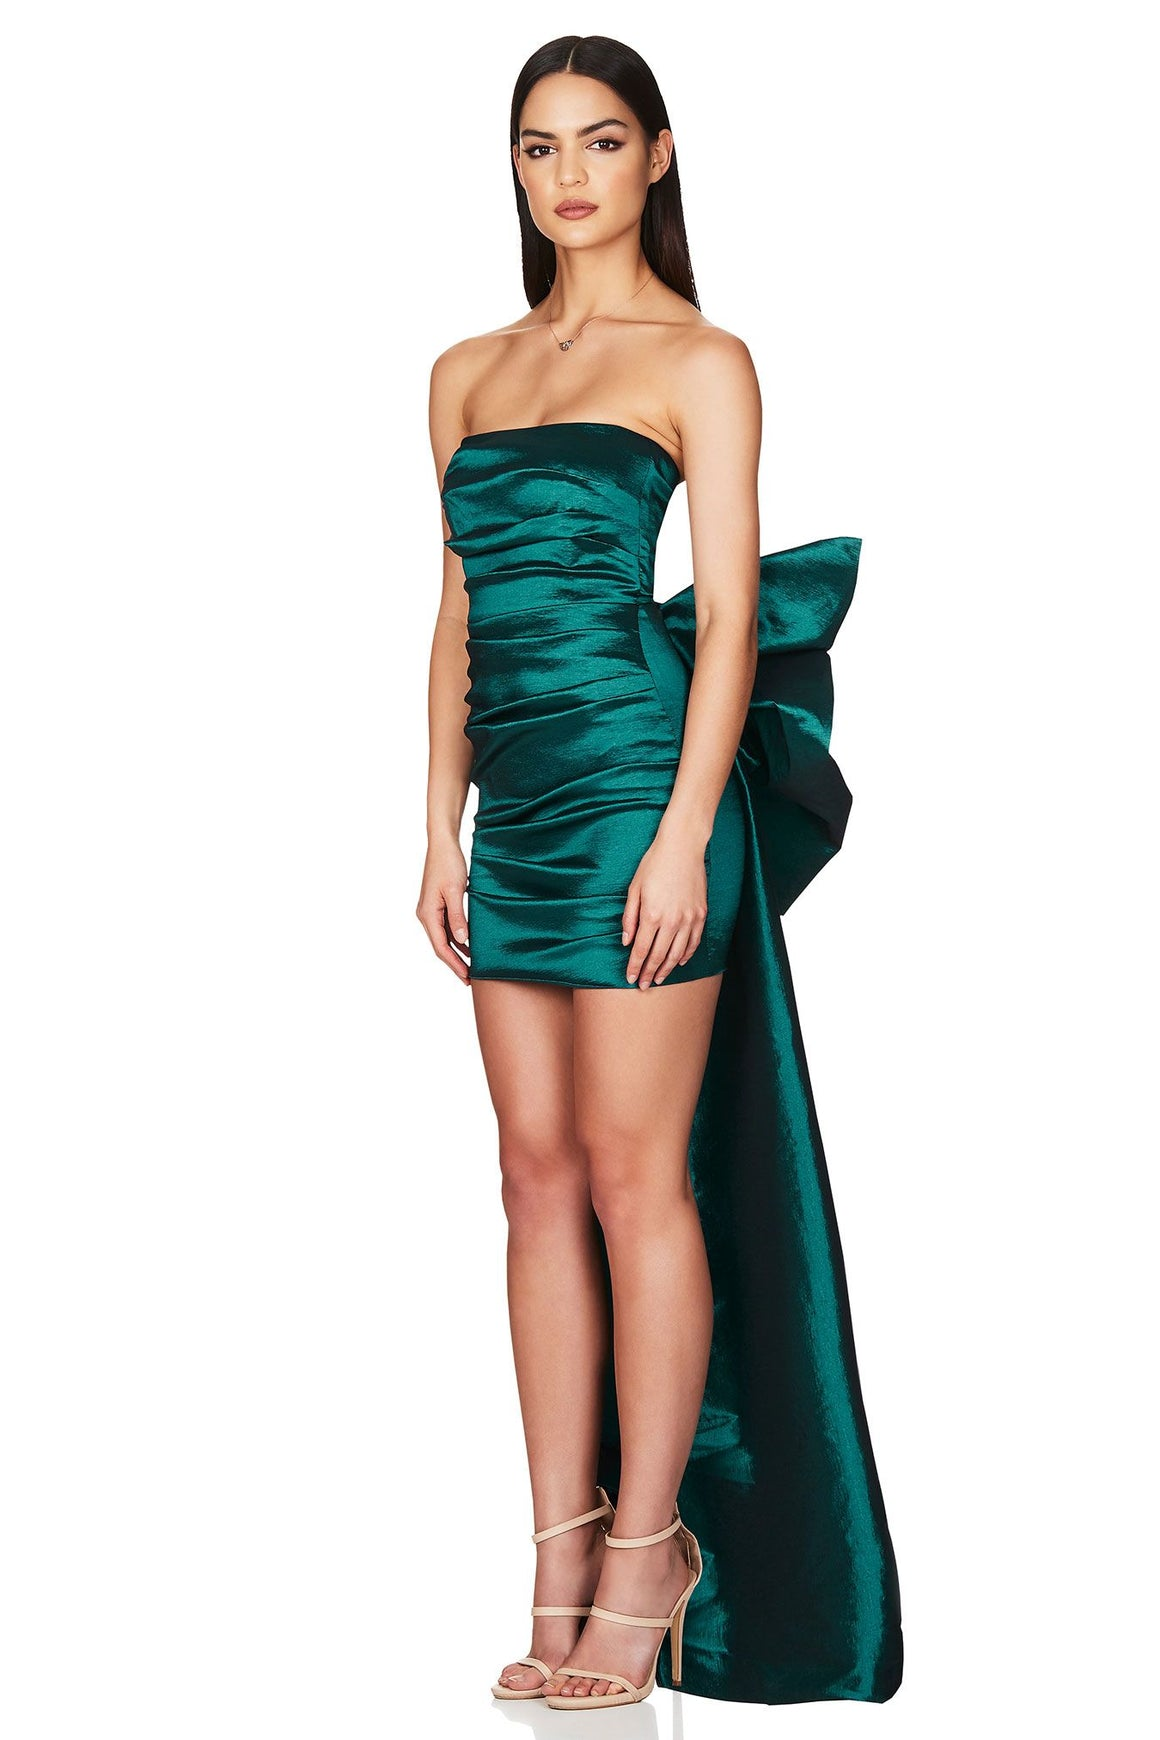 Adore 2Way Dress - Teal